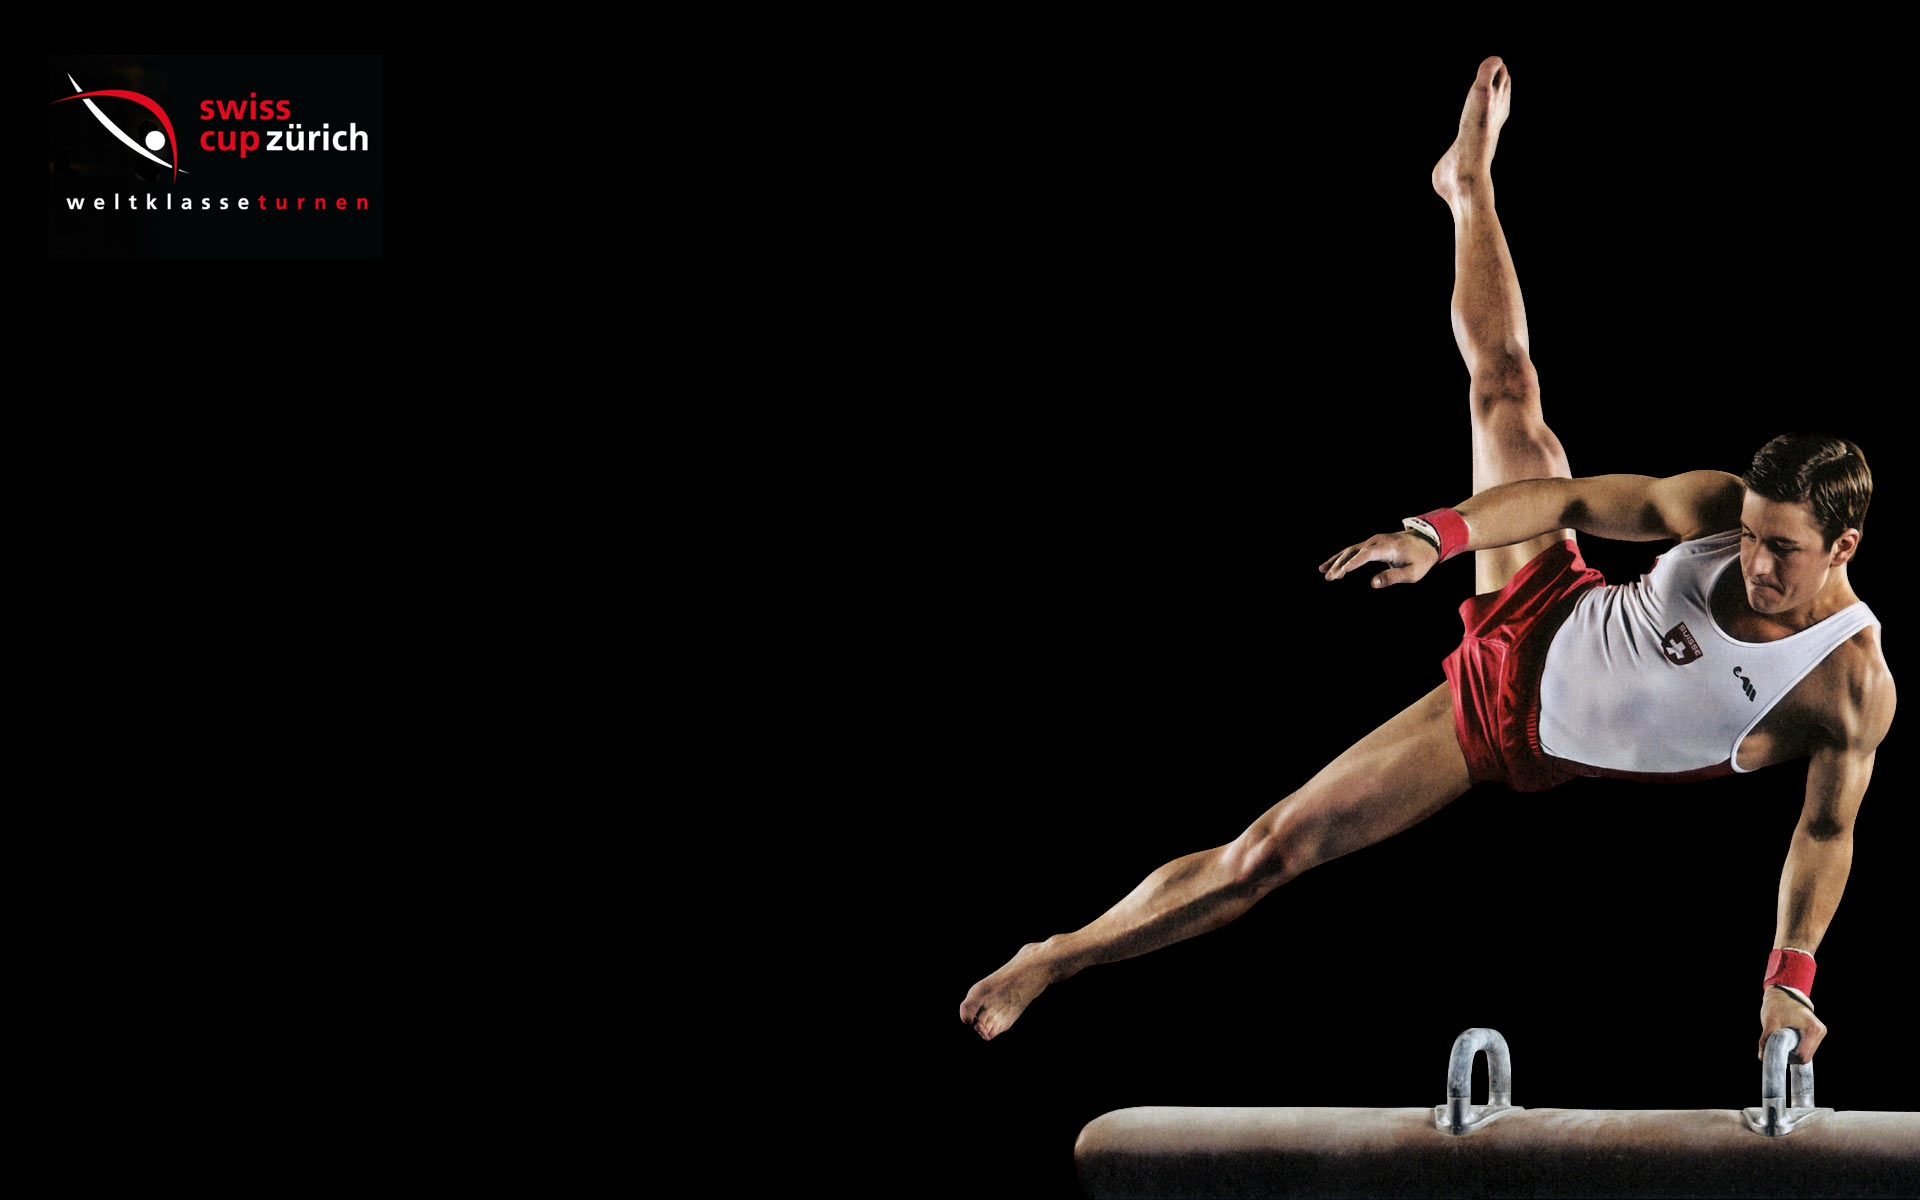 wallpaper.wiki-Gymnastics-Wallpaper-PIC-WPE005826